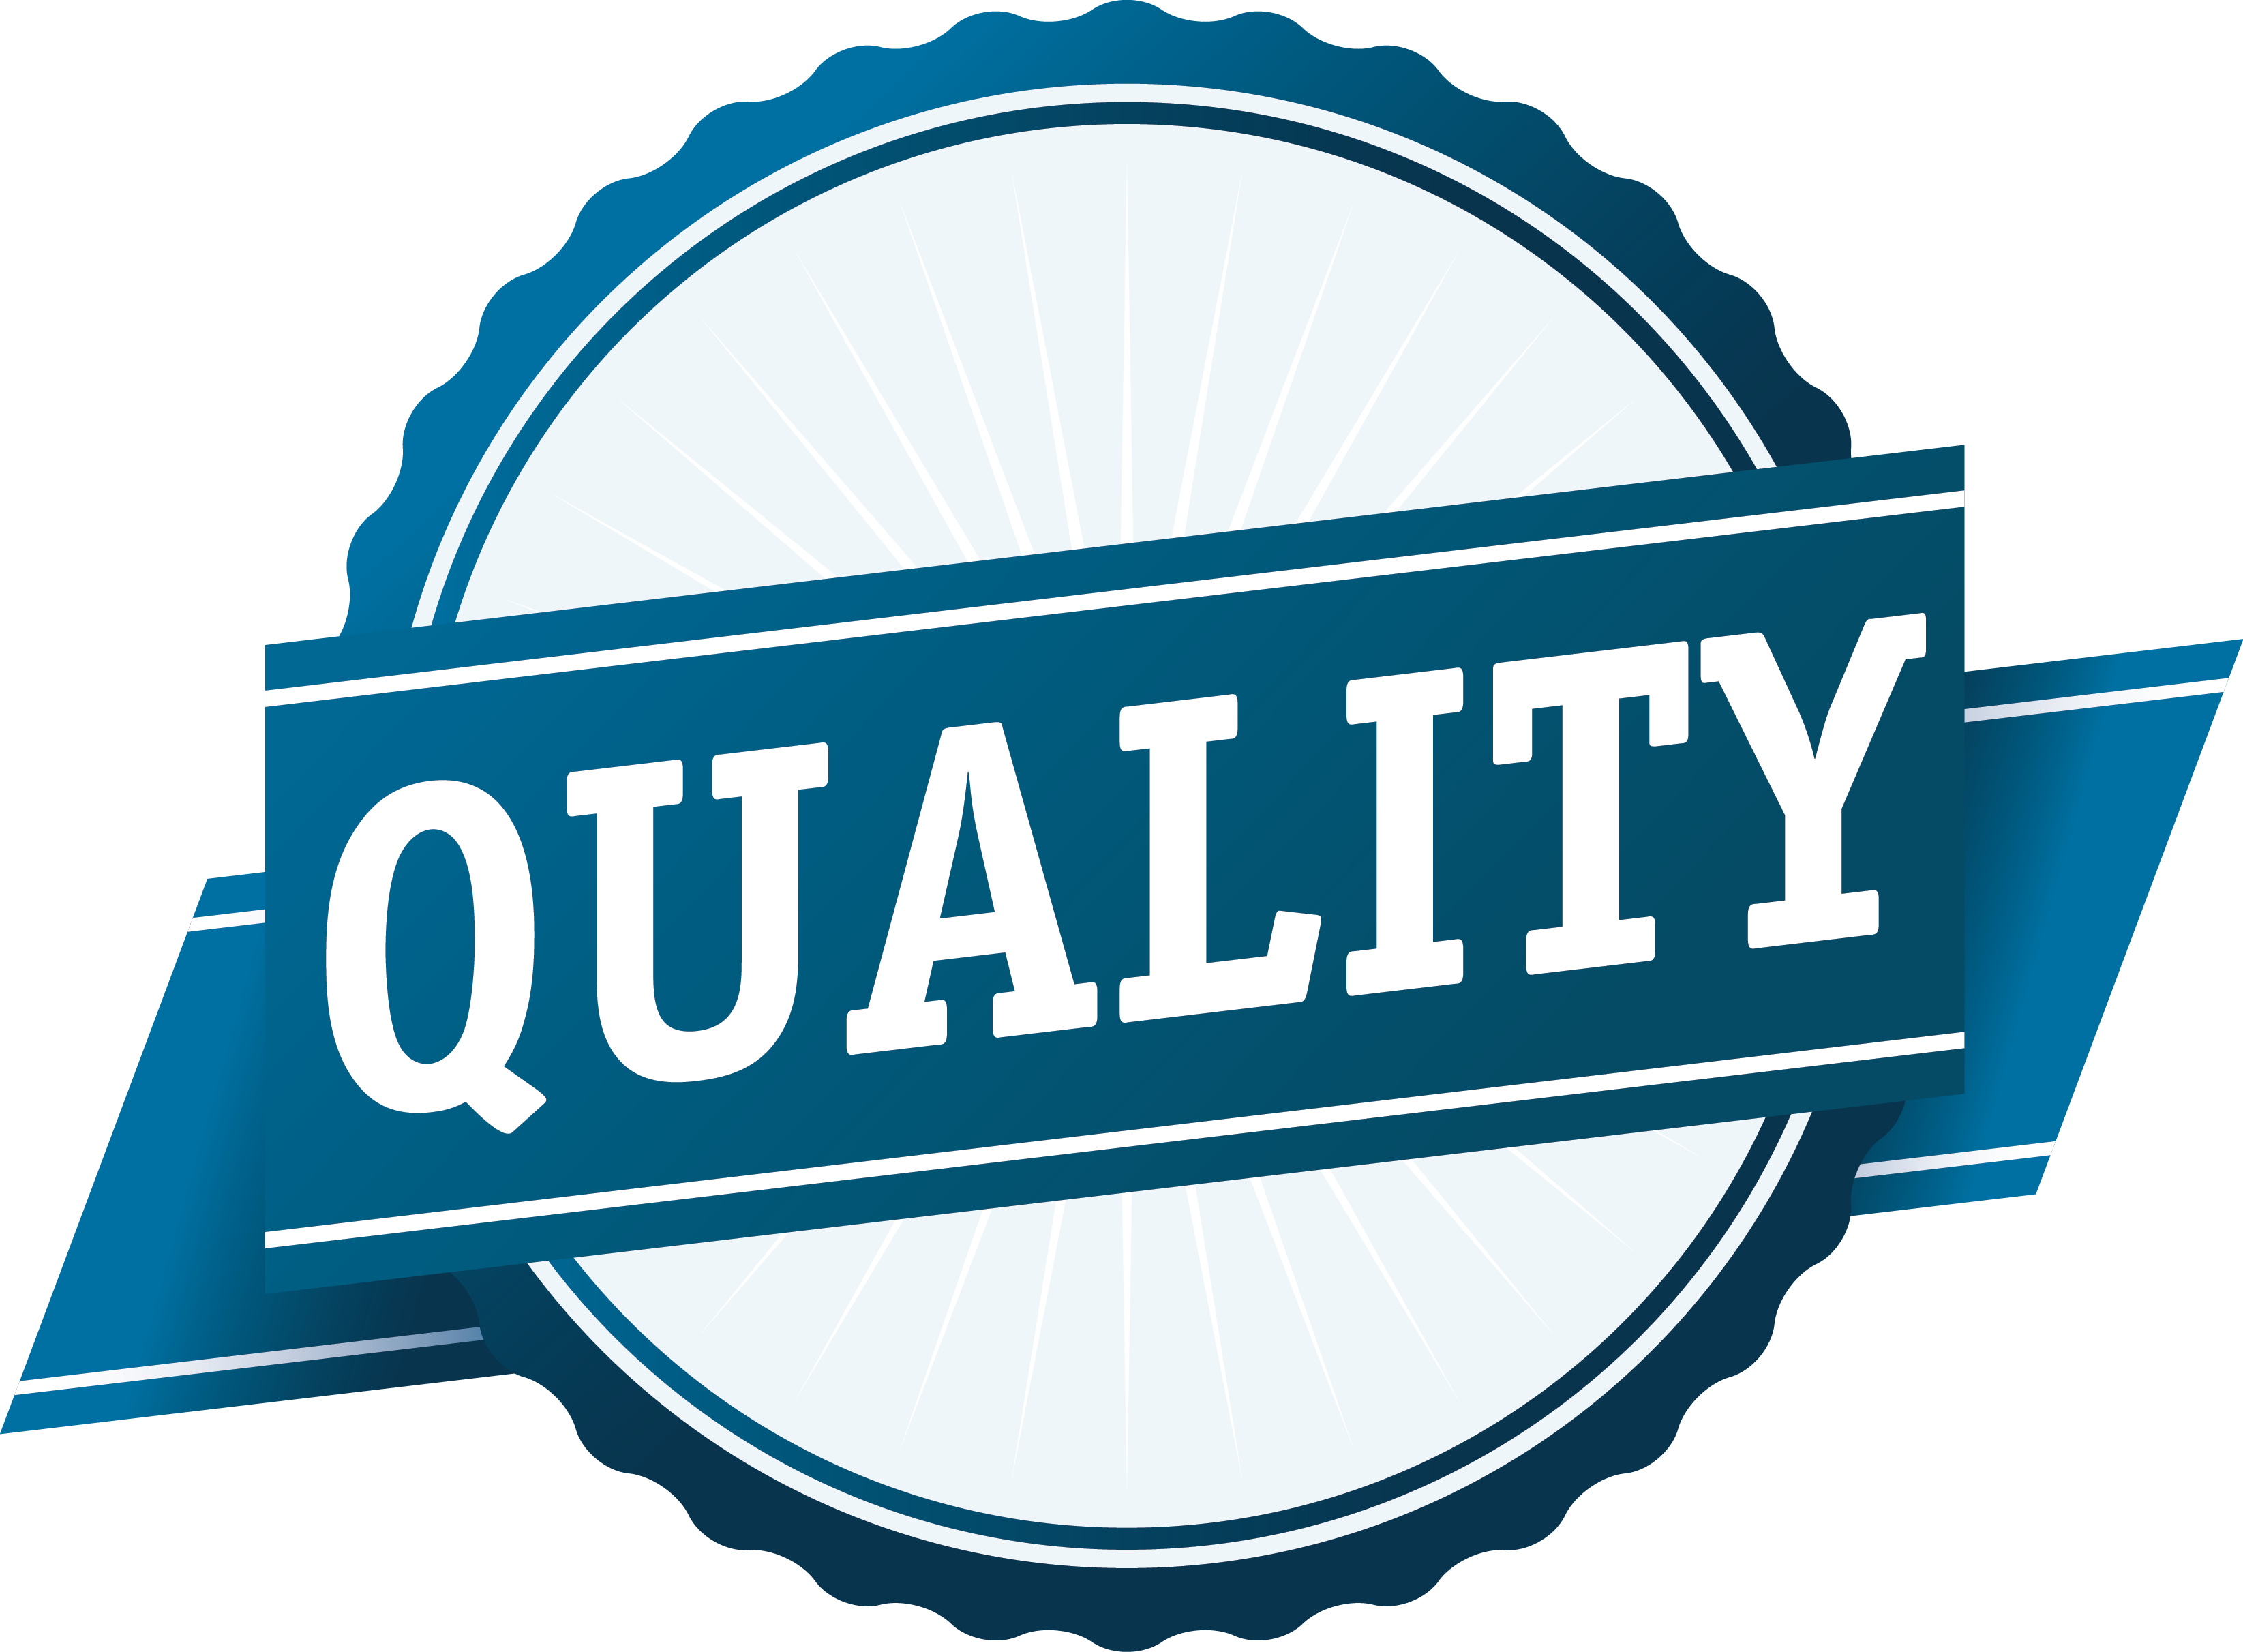 Quality Assurance PNG Image with Transparent Background.